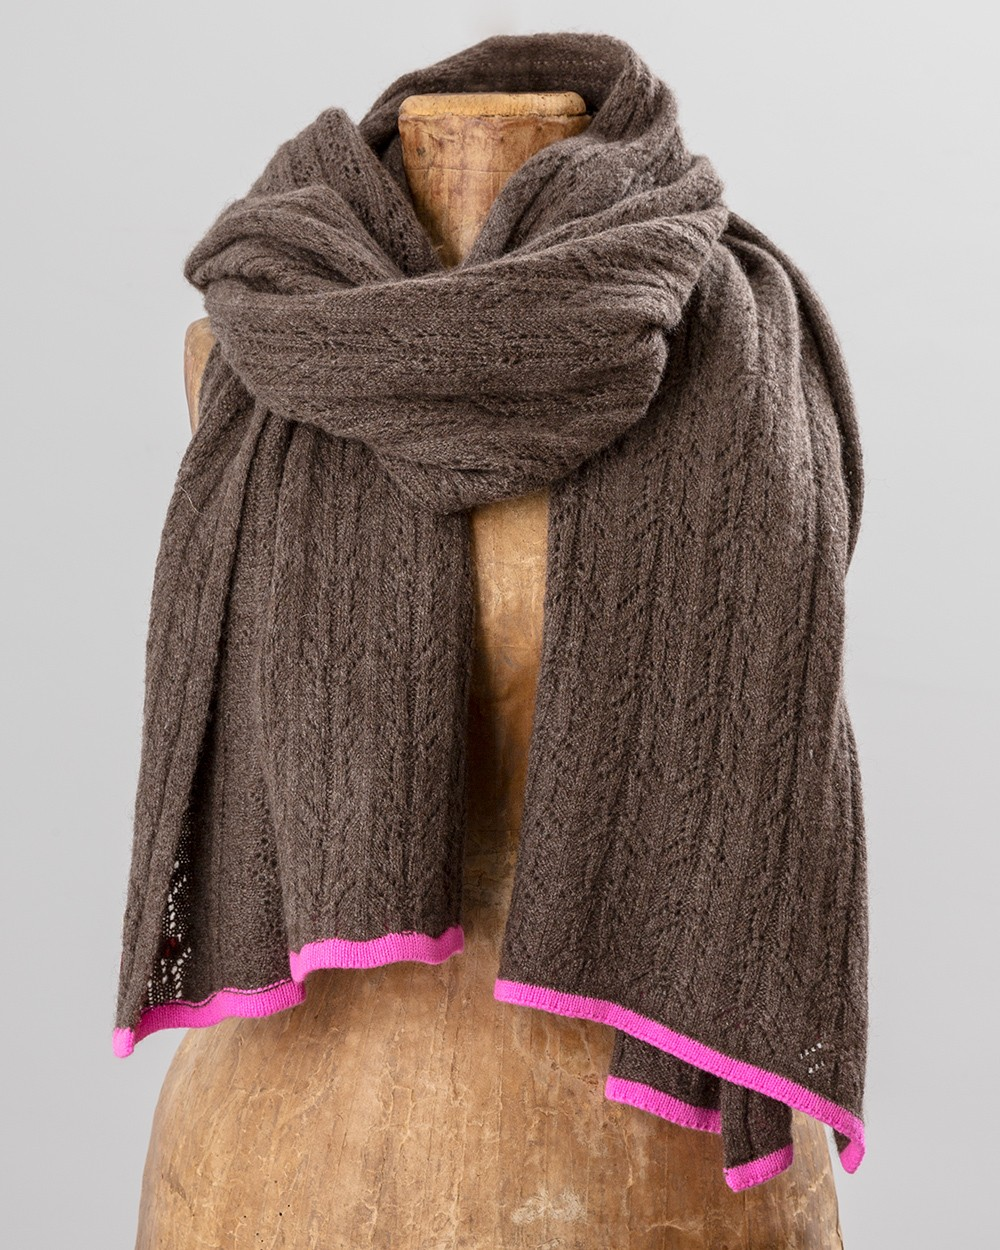 Neon Trim Scarf in Brown and Pink